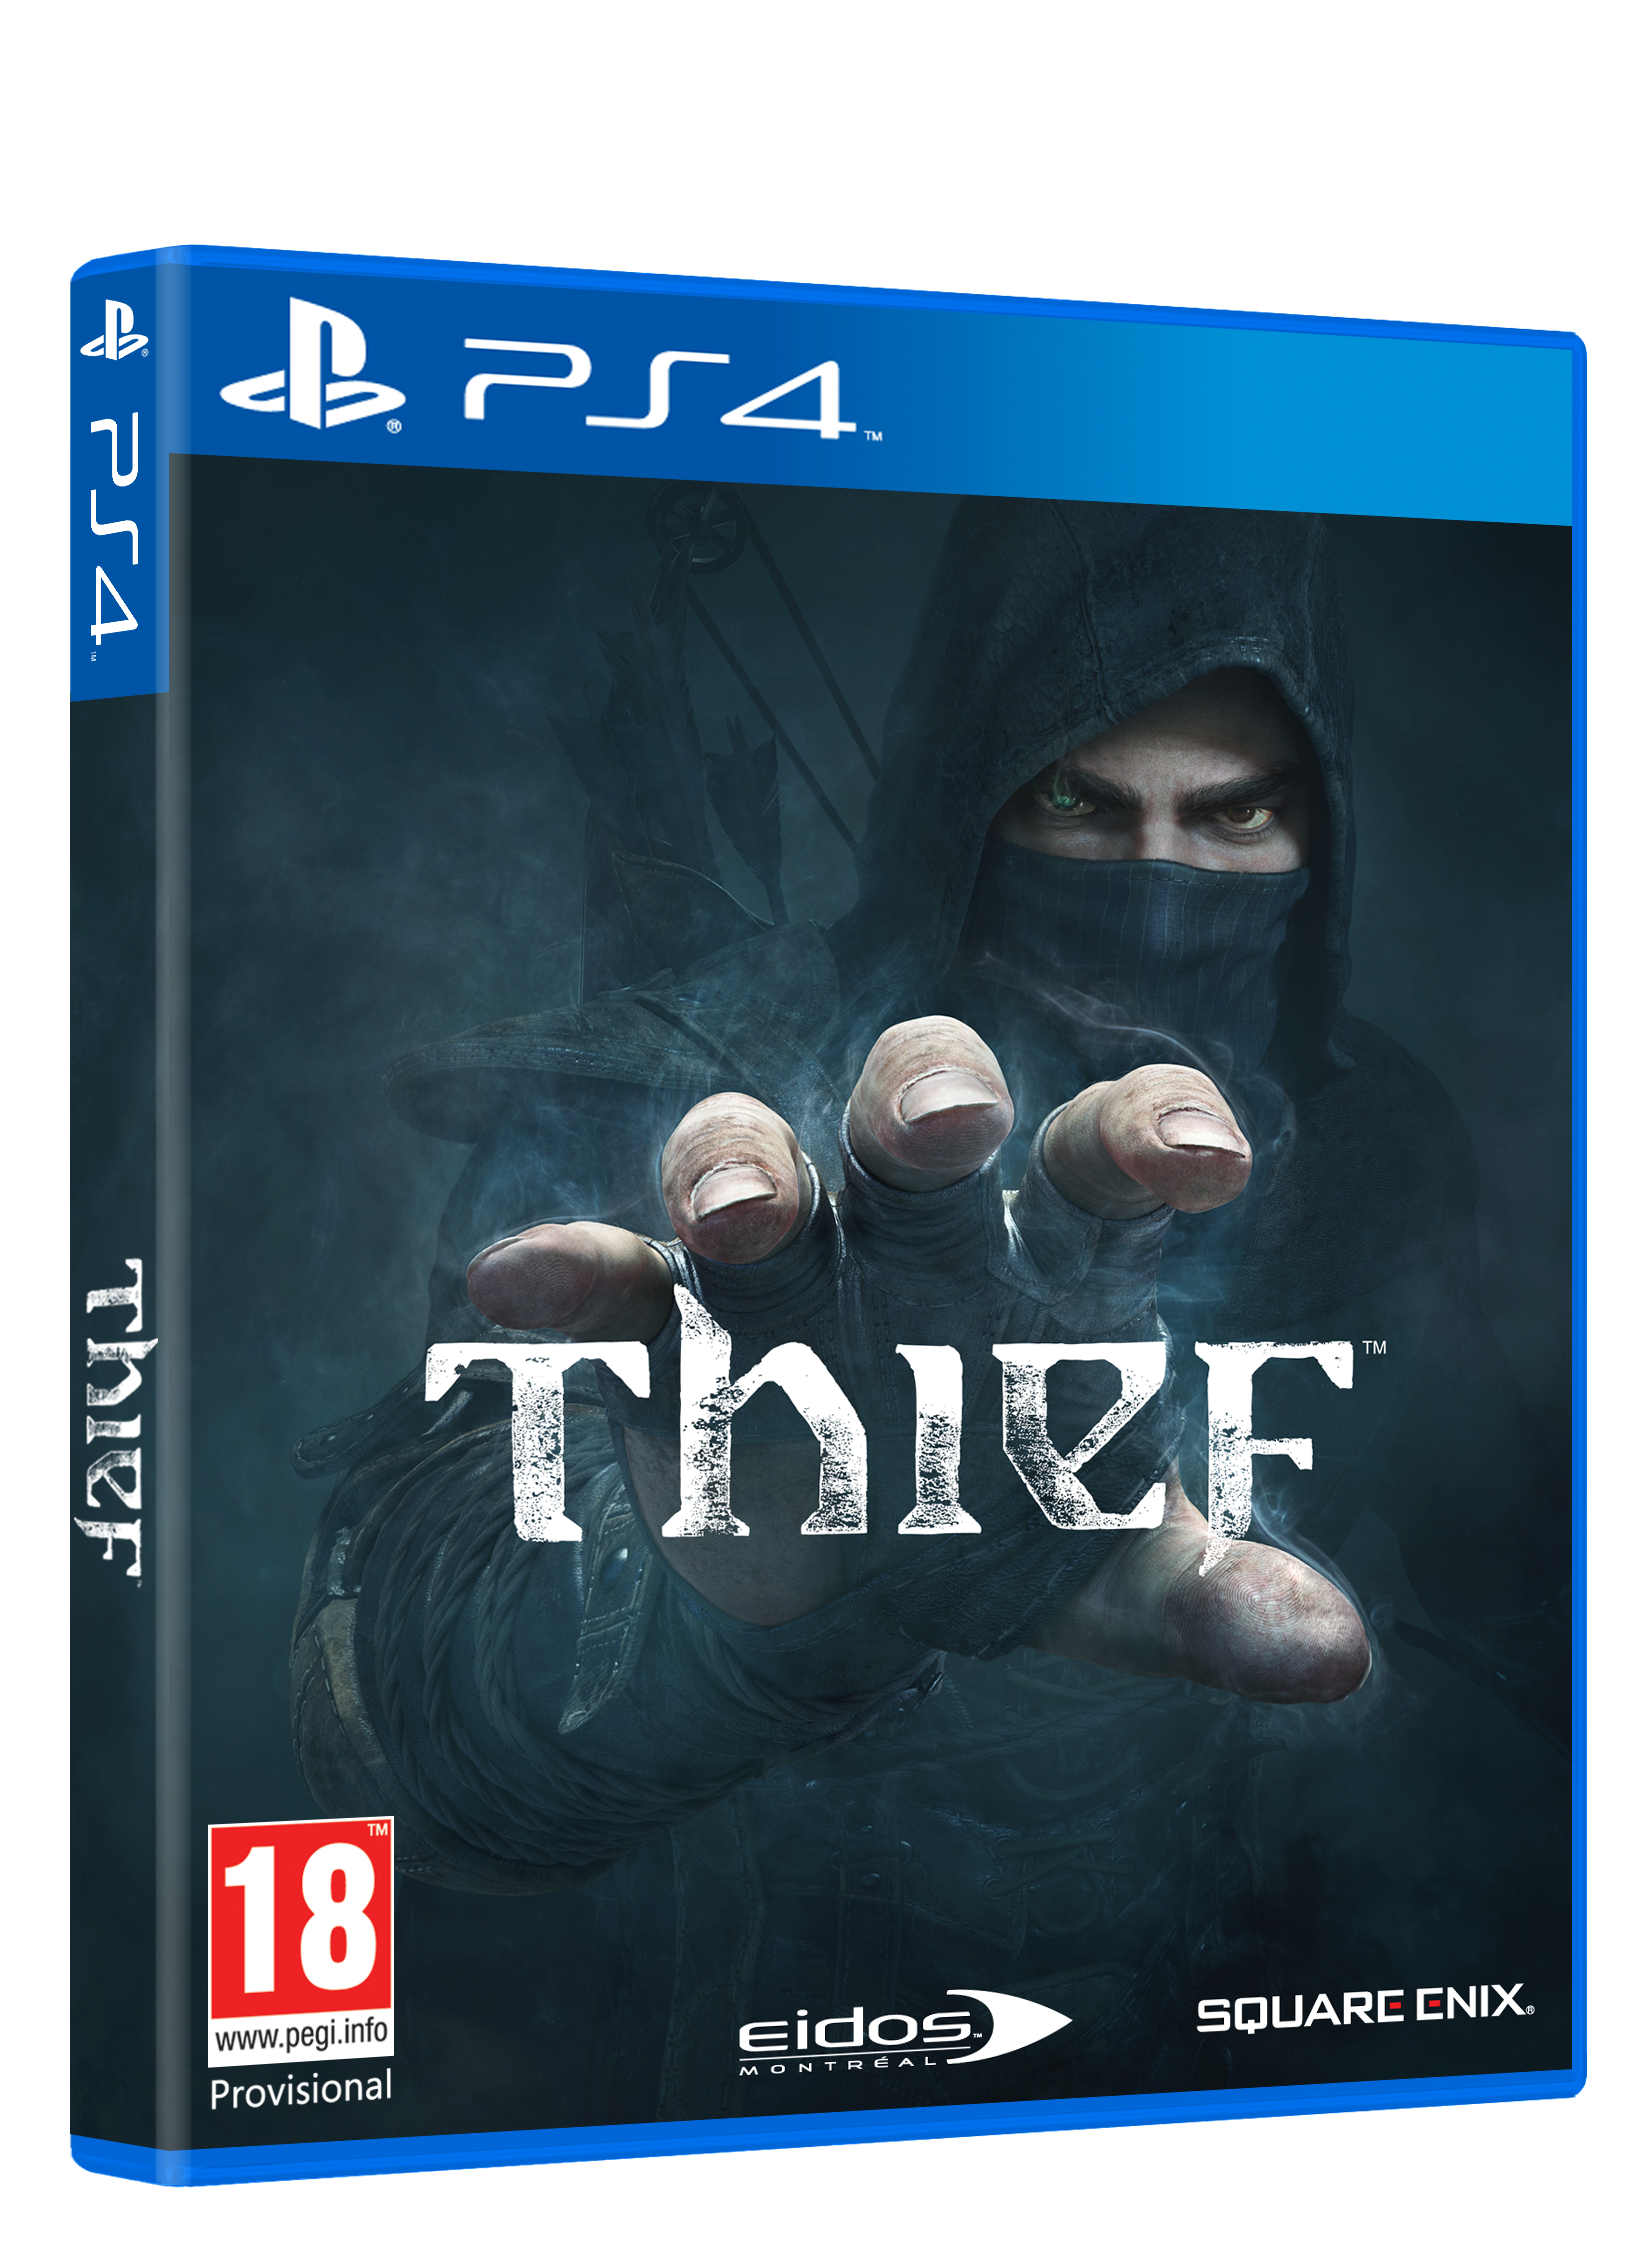 Ps4 Swipes Thief On February 25th In North America New Trailer Video Game Reviews New Trailers Ps4